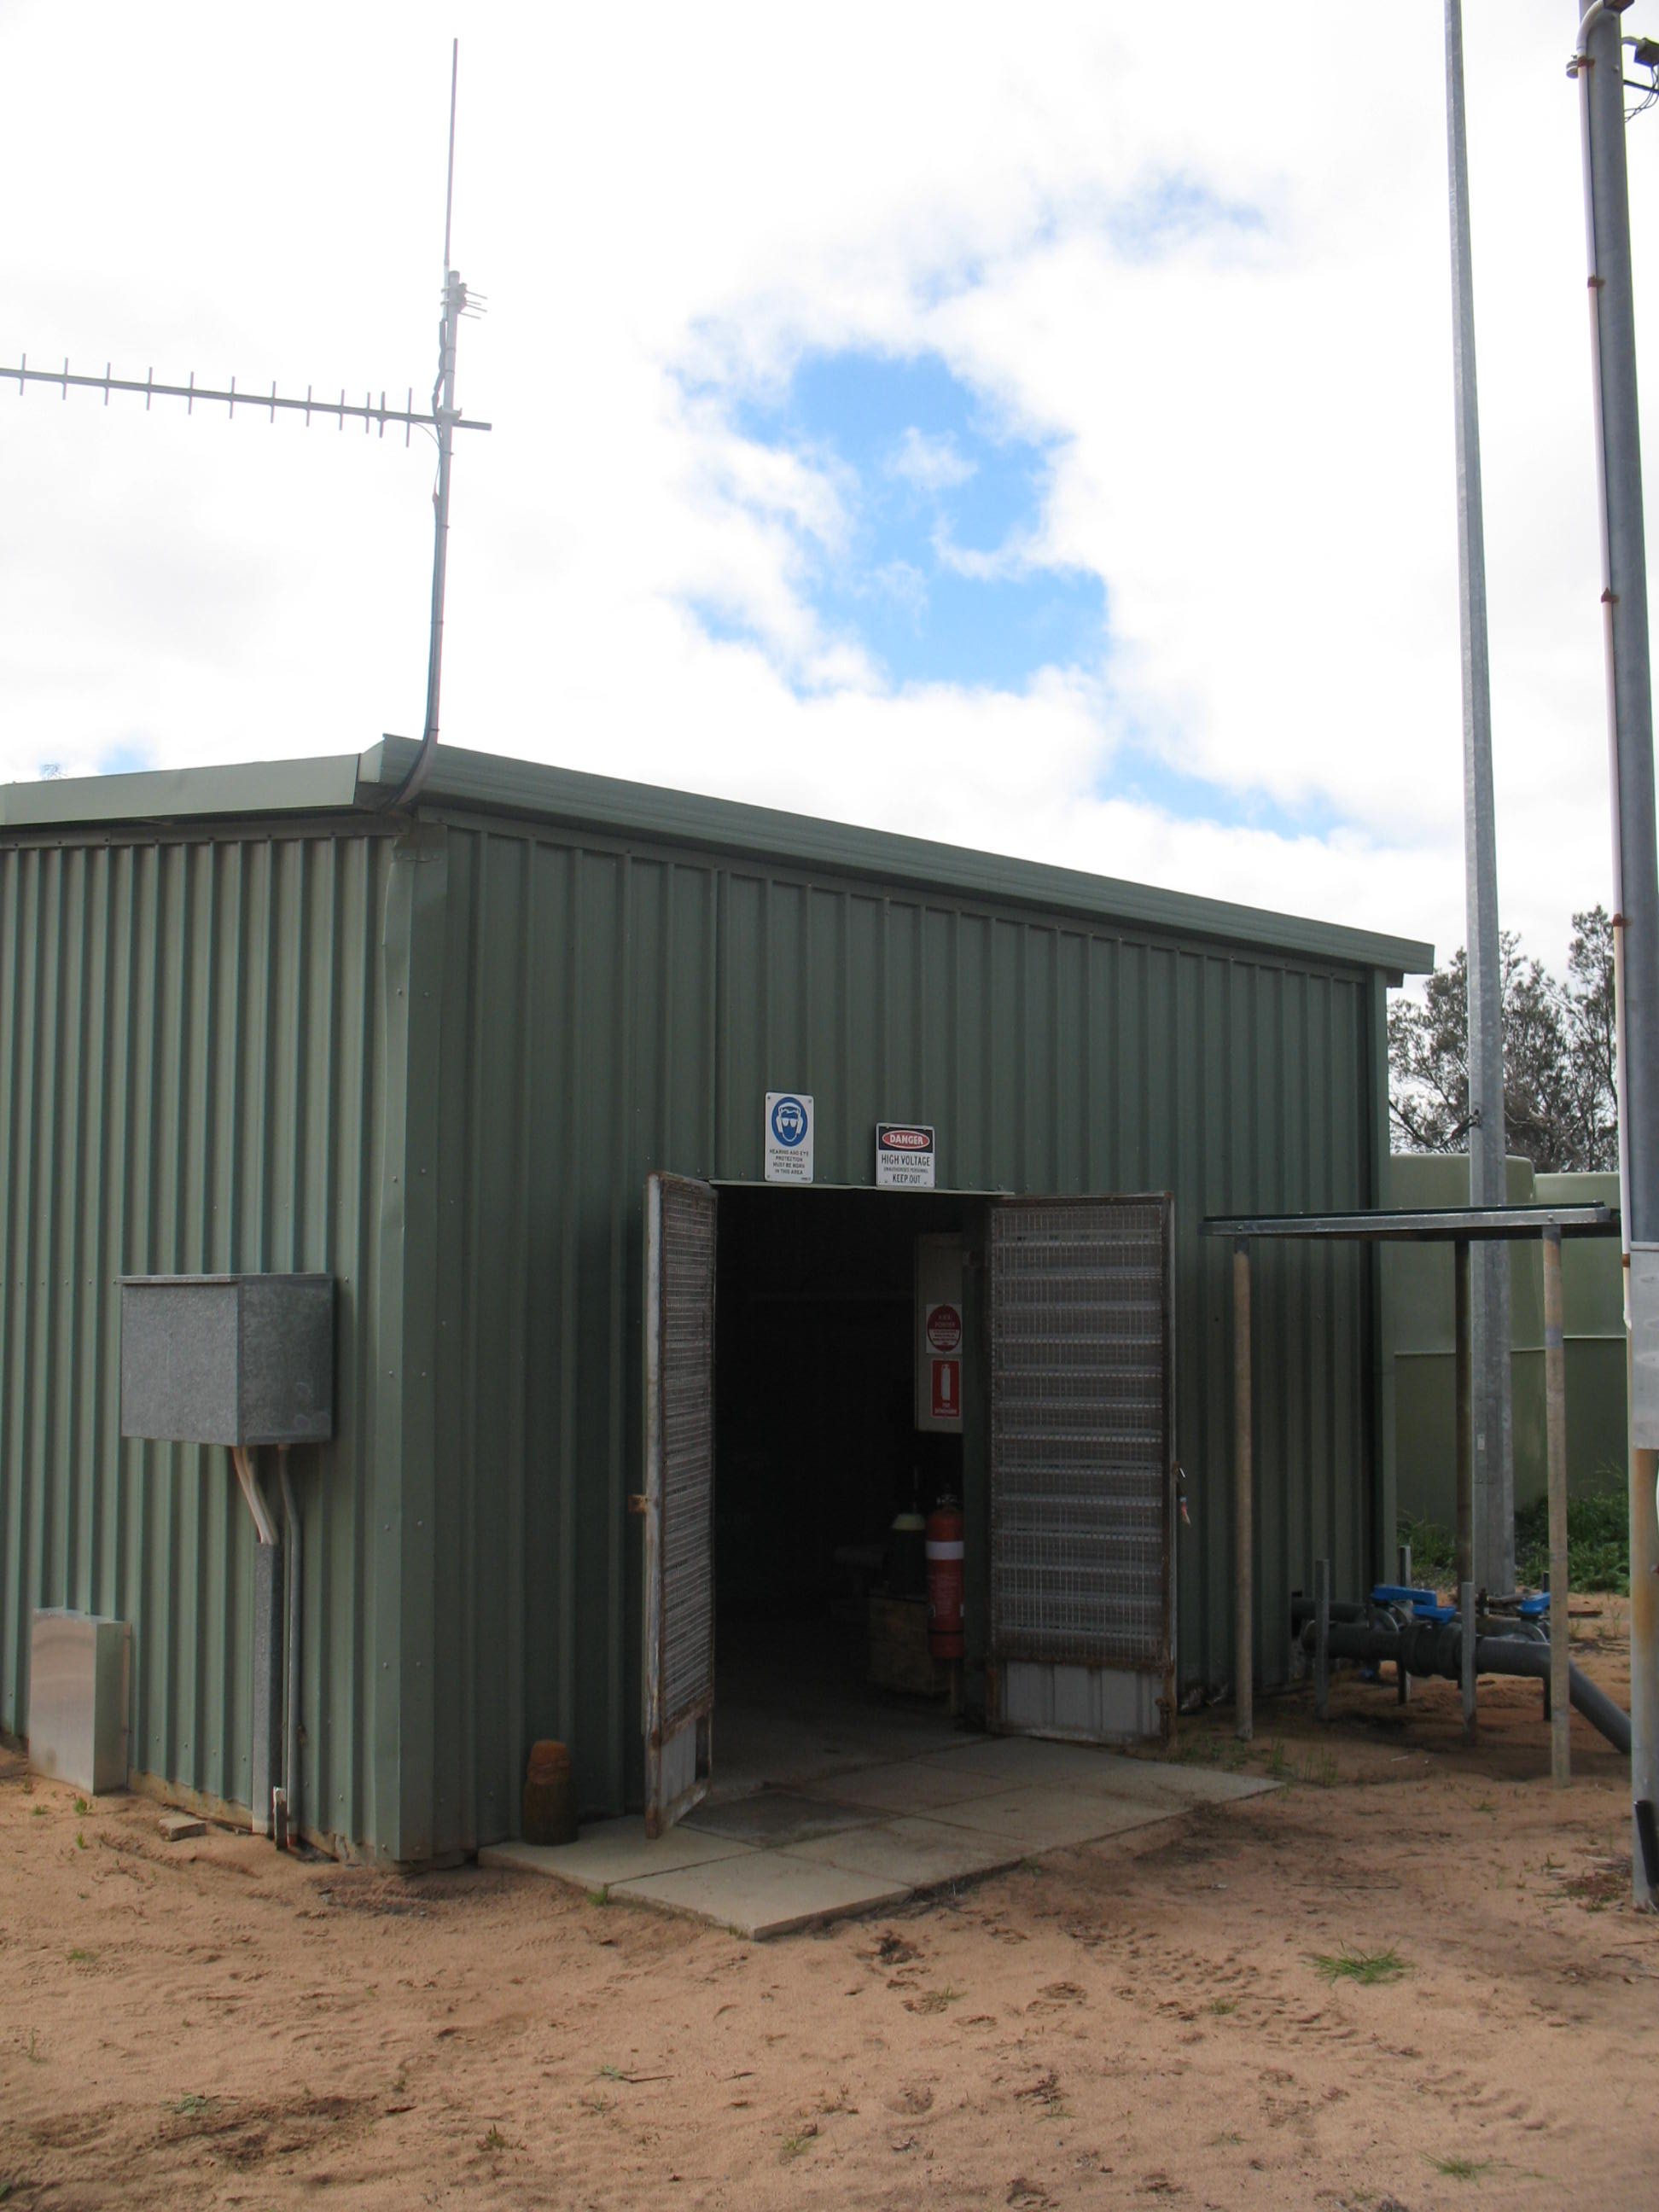 pump shed with Yargy installed for SiteNet via GSM monitoring